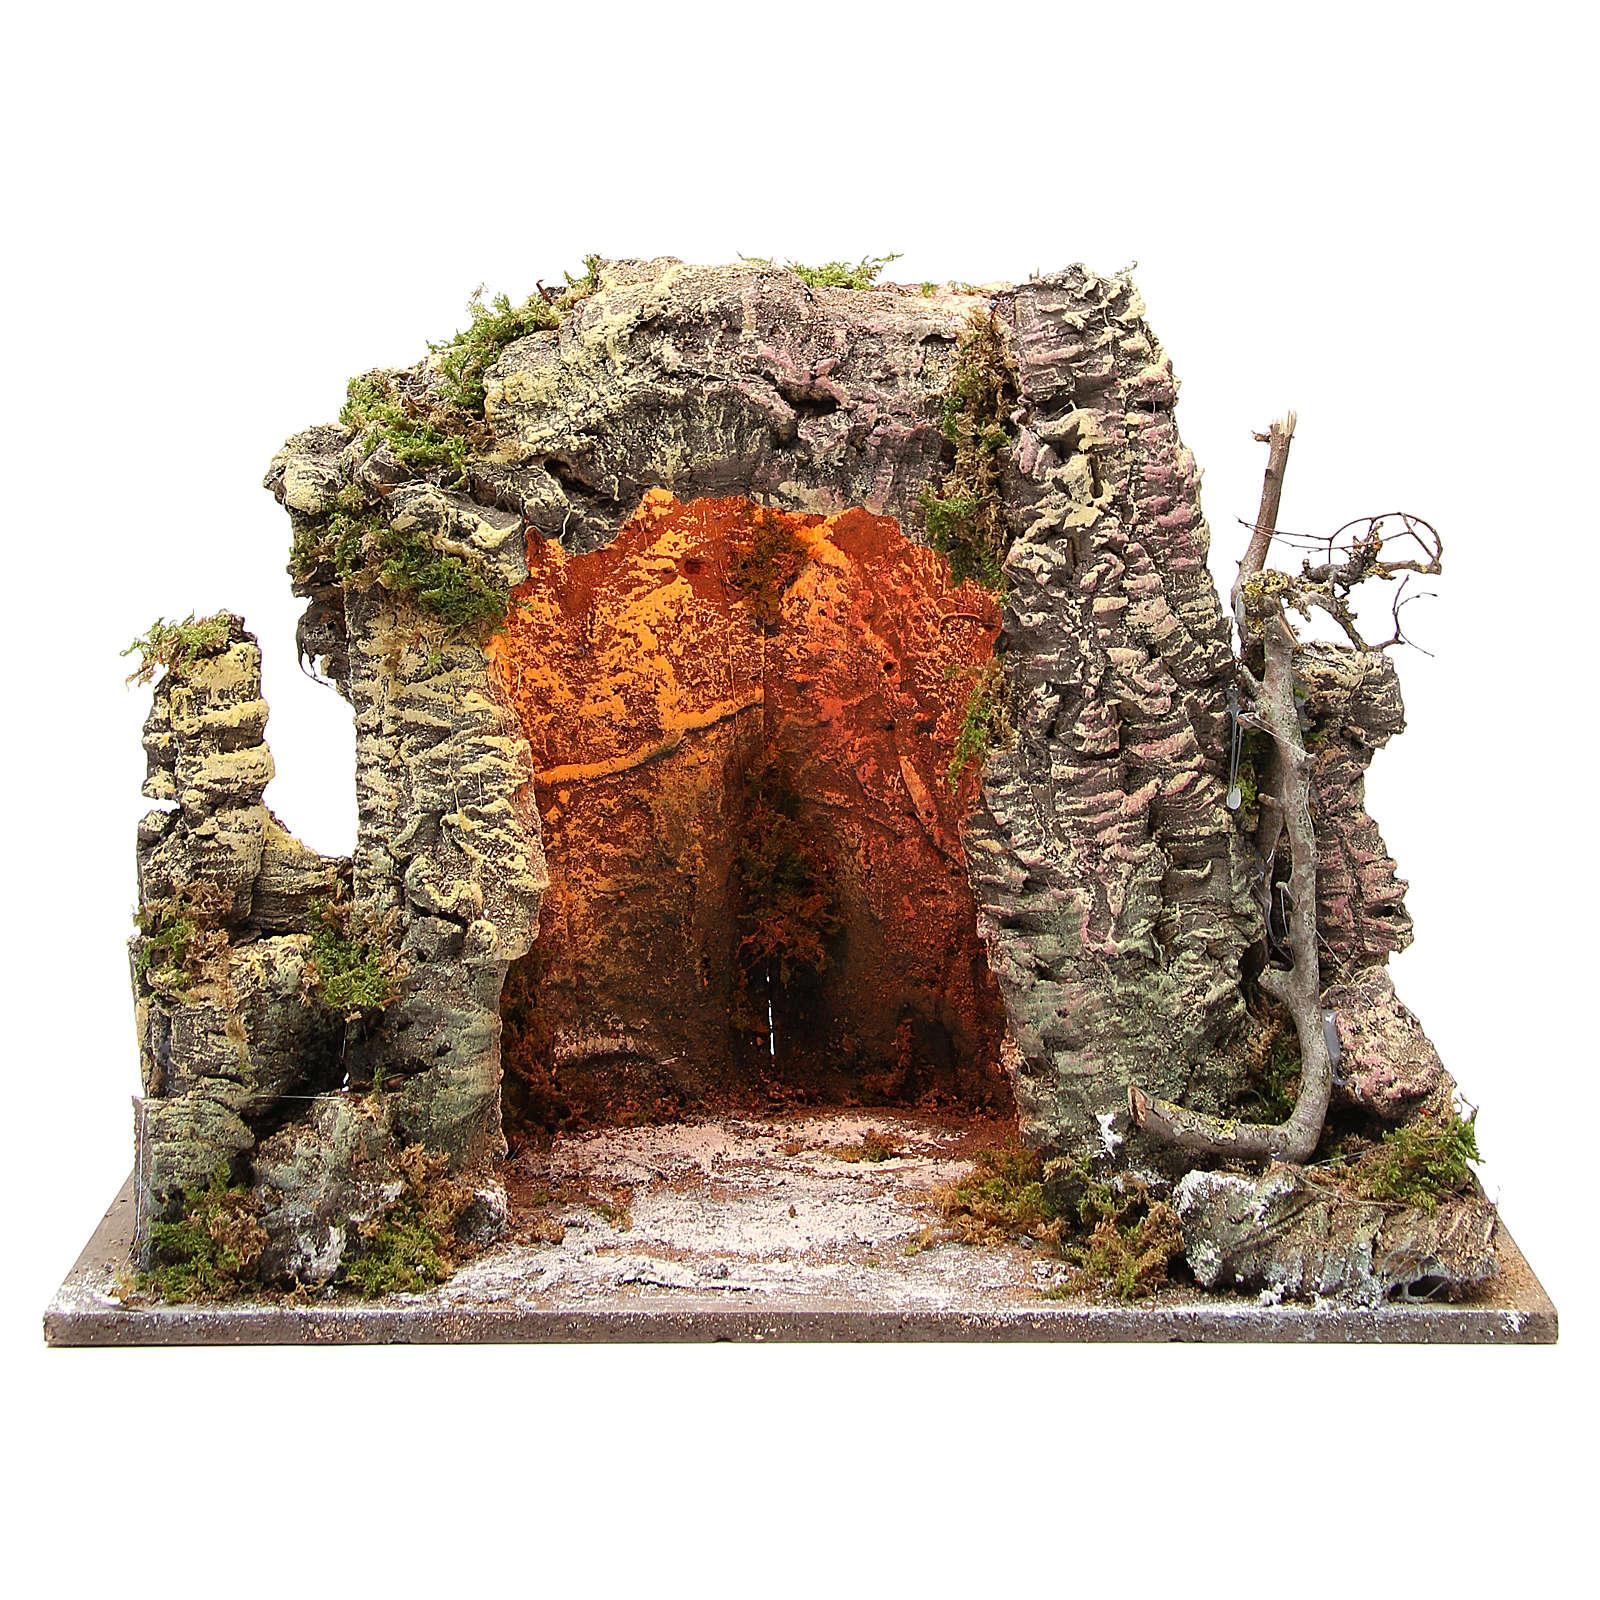 Illuminated nativity grotto 35x50x26cm 4